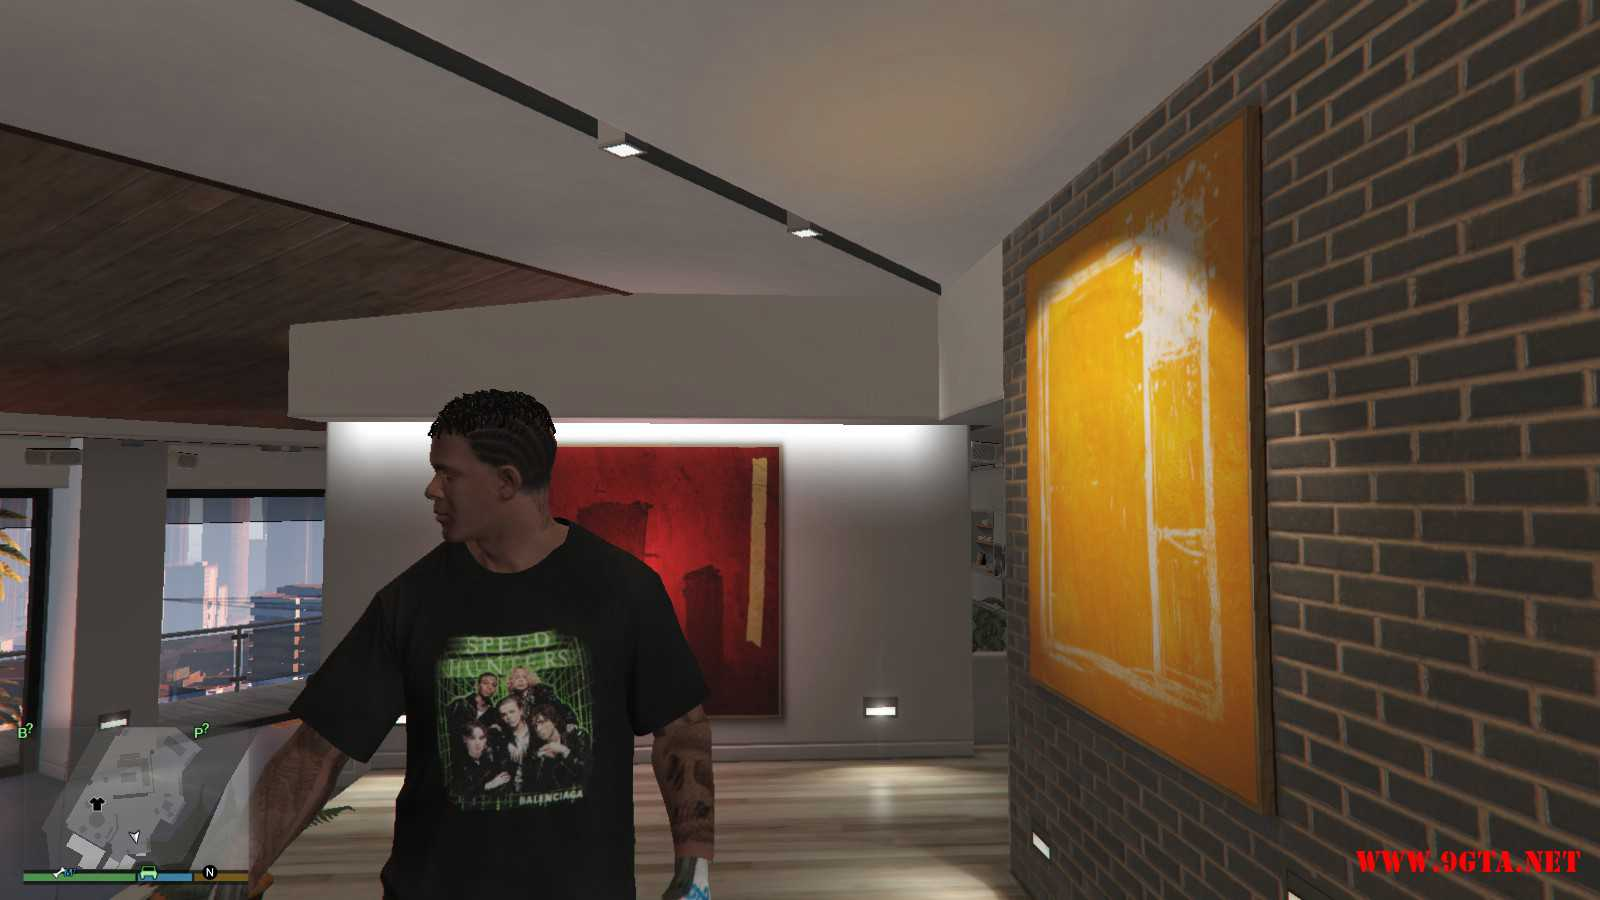 Balenciaga Speedhunter Final T-Shirt GTA5 Mods (1)